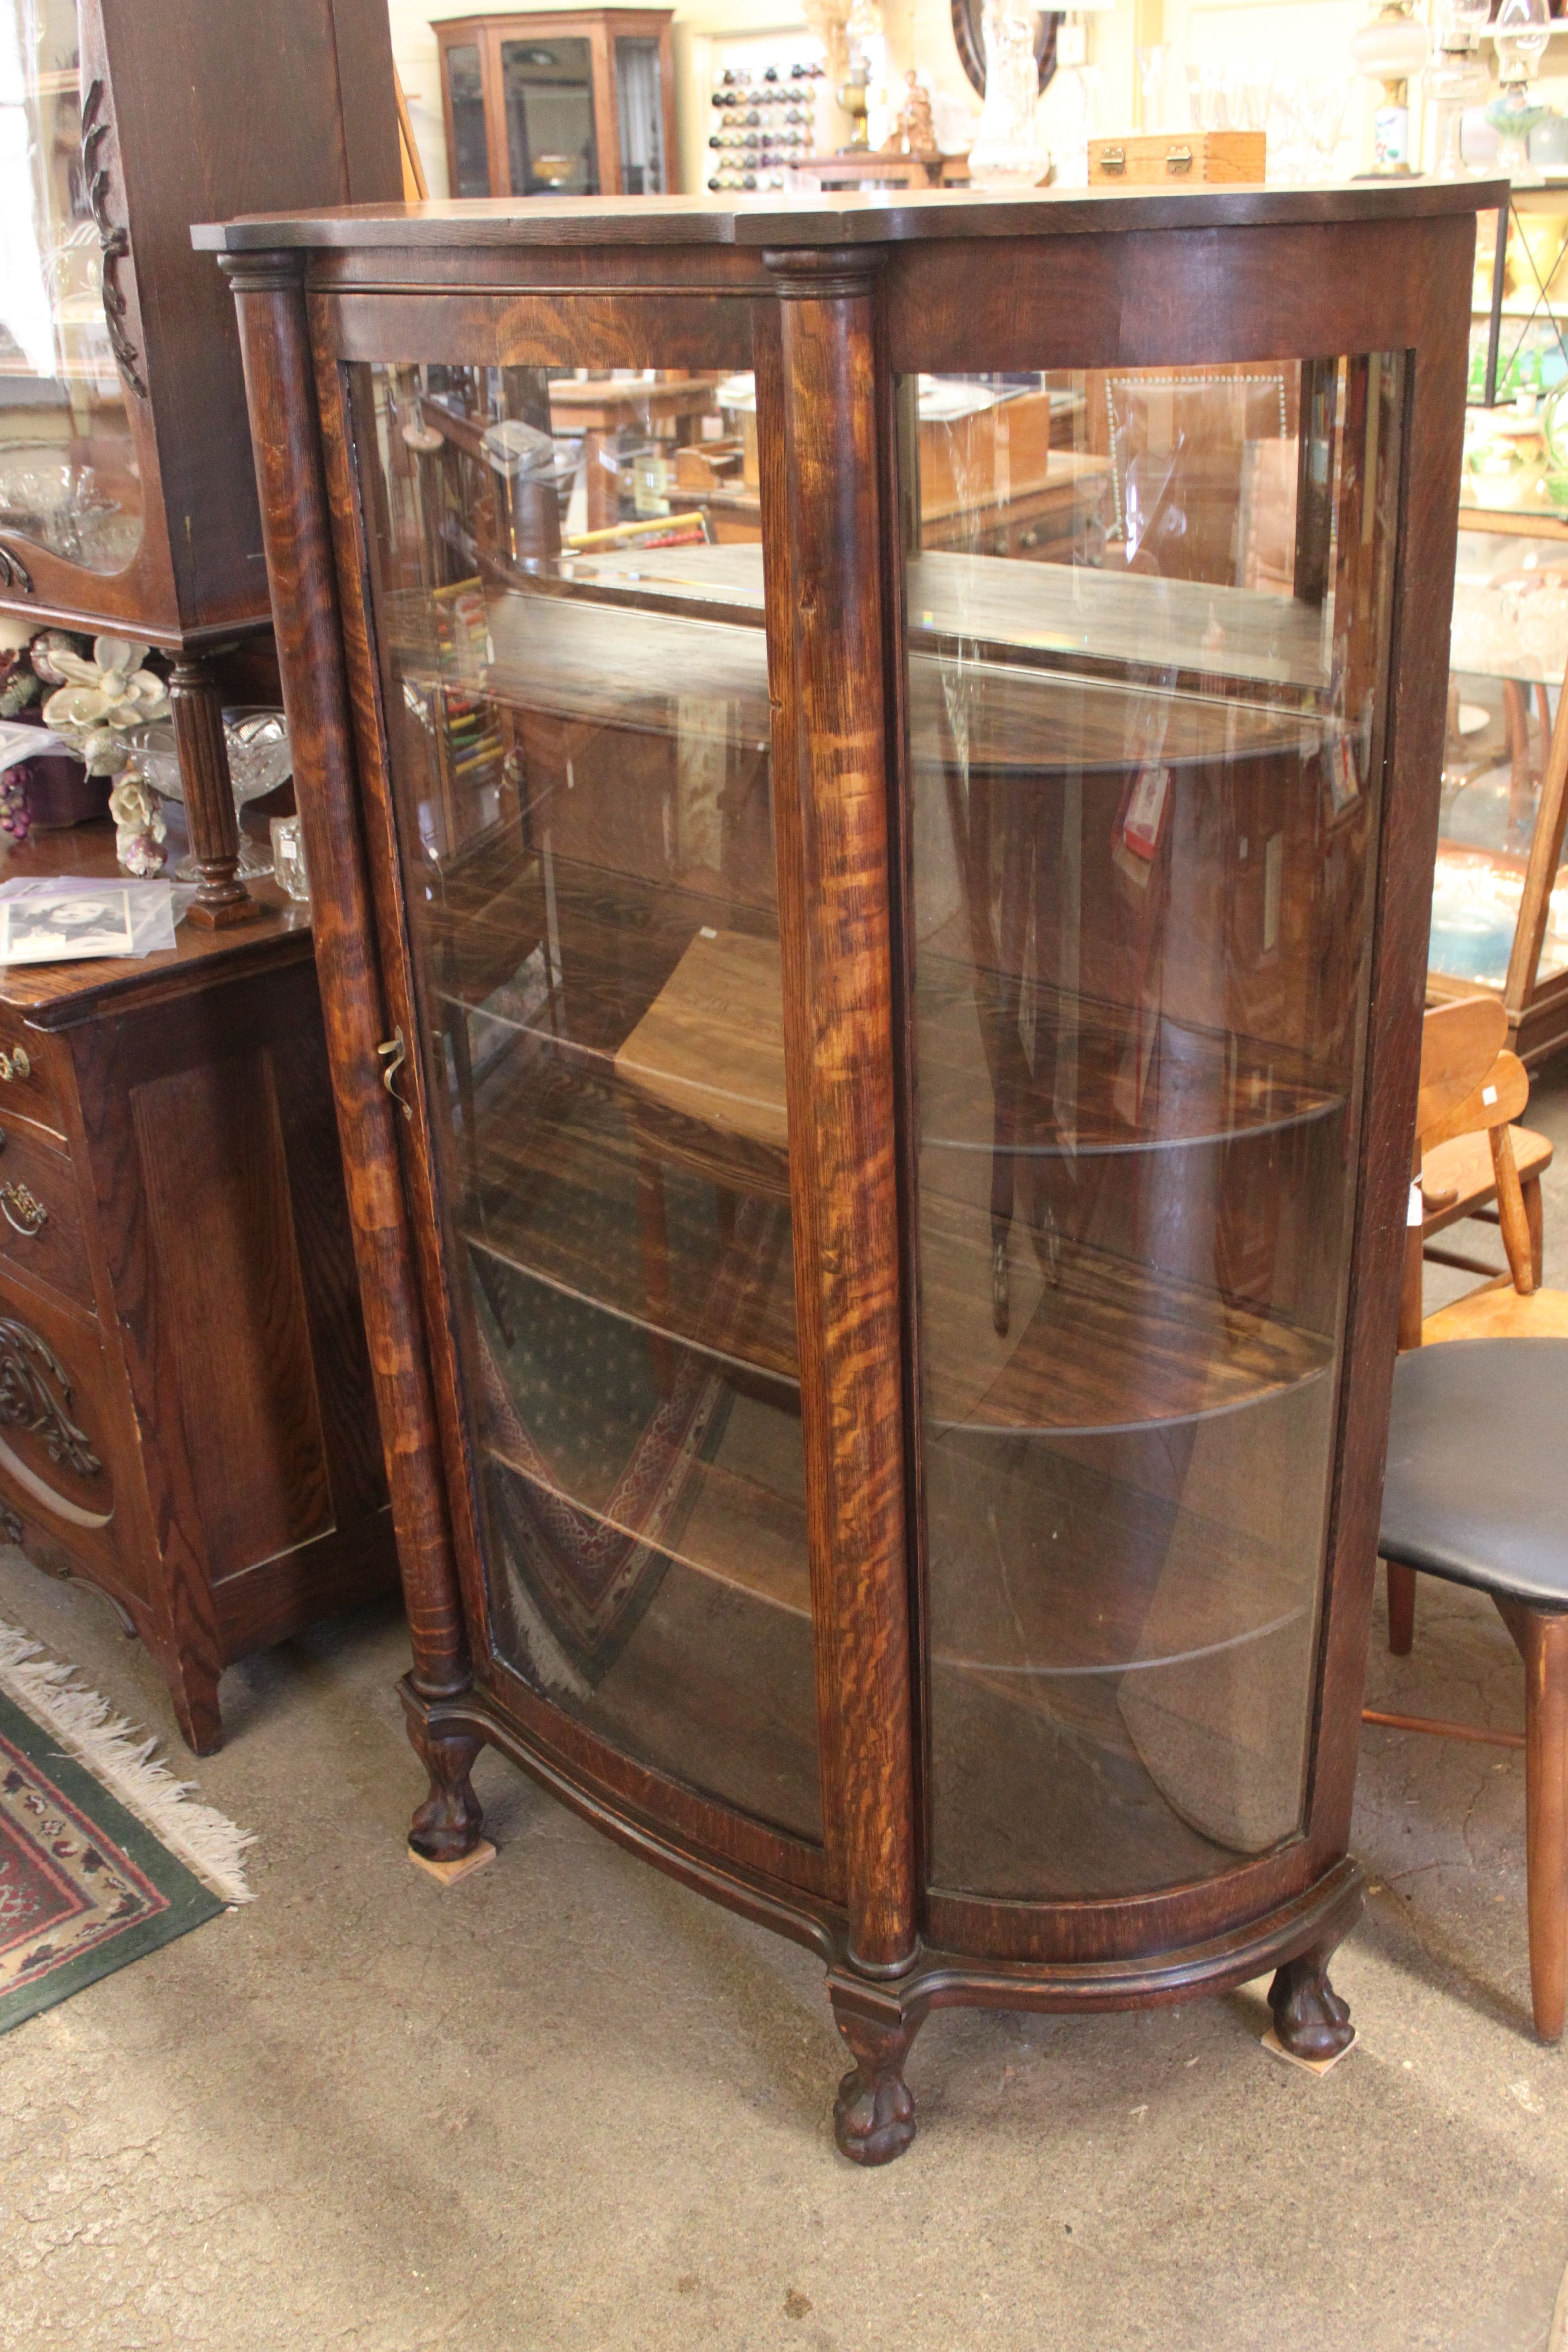 Vintage Wooden Cabinet With Glass Doors Antique China Cabinets China Cabinet Display Glass Curio Cabinets